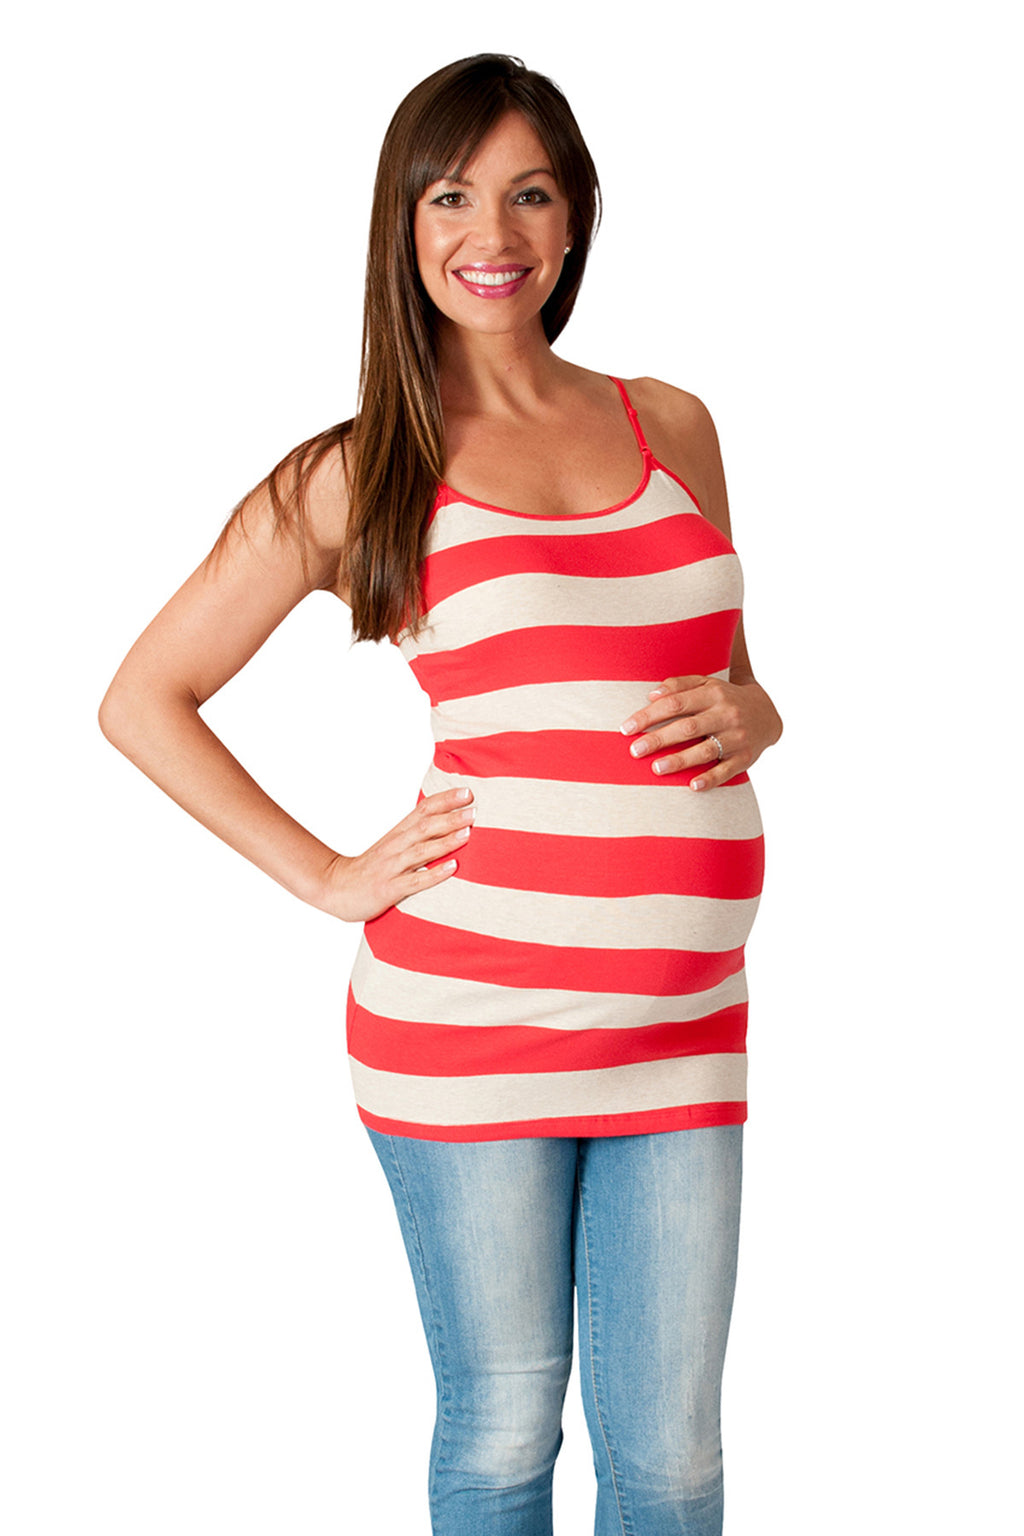 Red Striped Maternity Tank Top - Stay Cool - Mommylicious